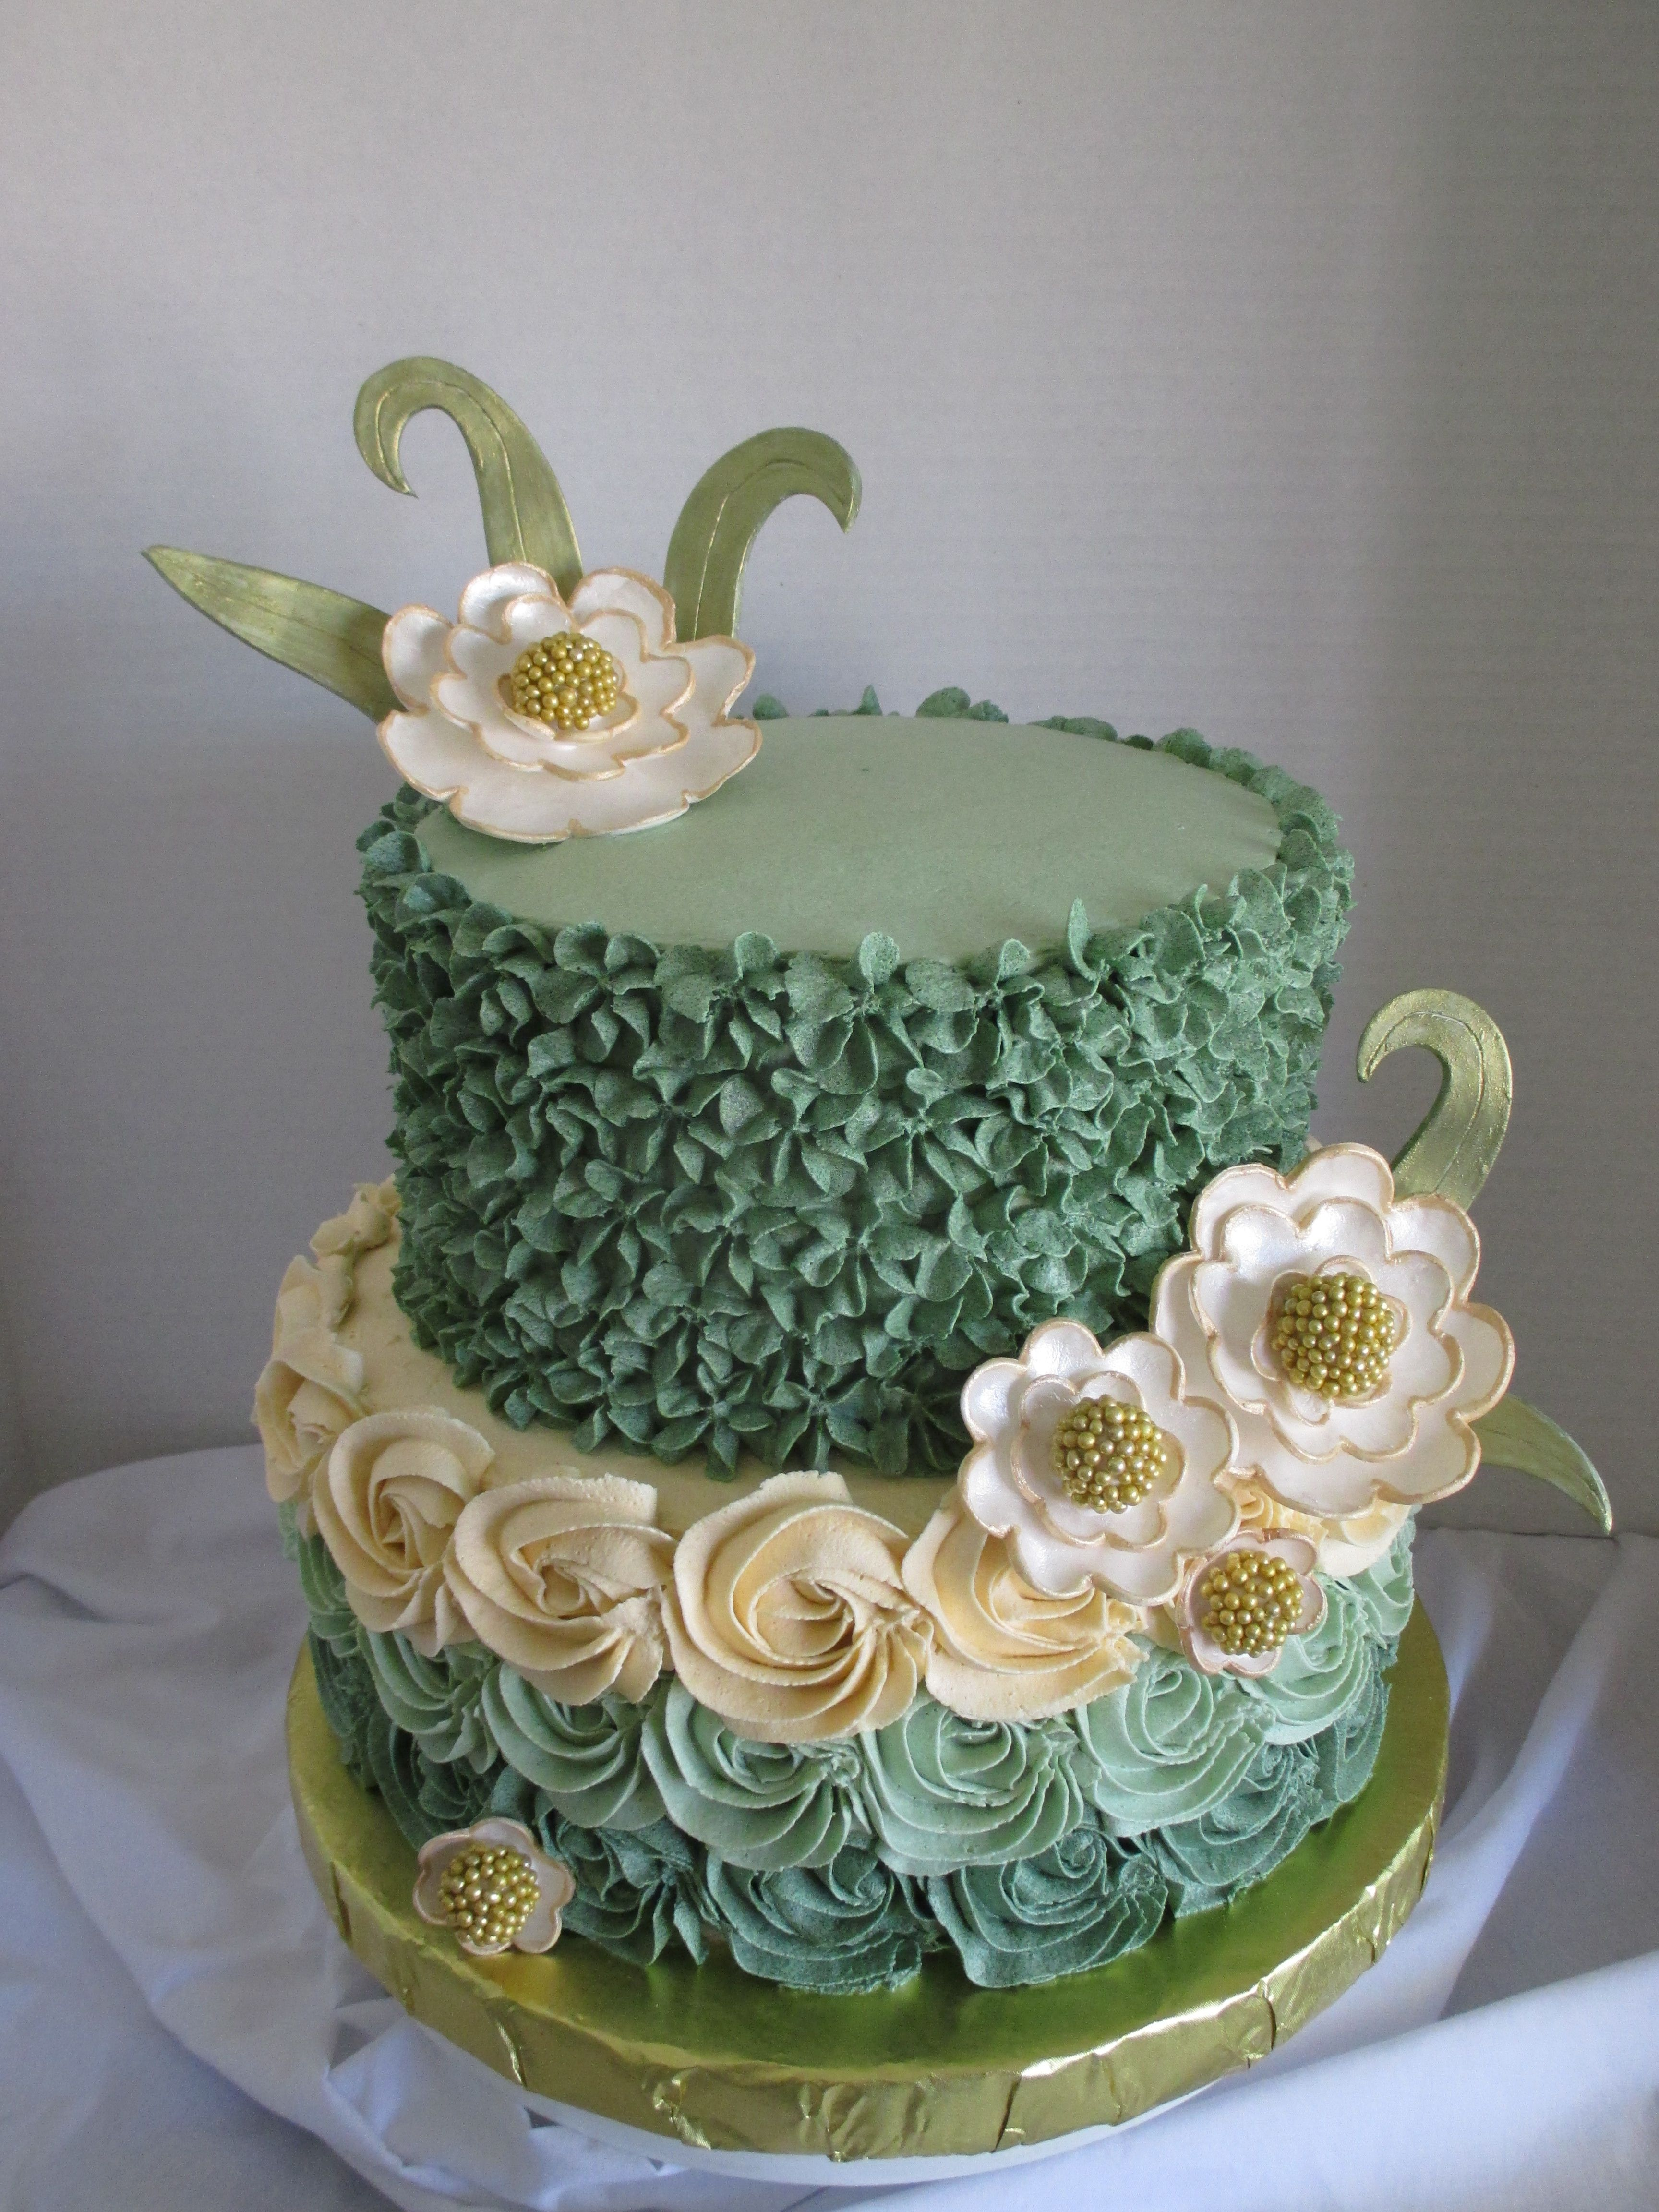 Buttercream roses on bottom and drop flowers on top Green ombre